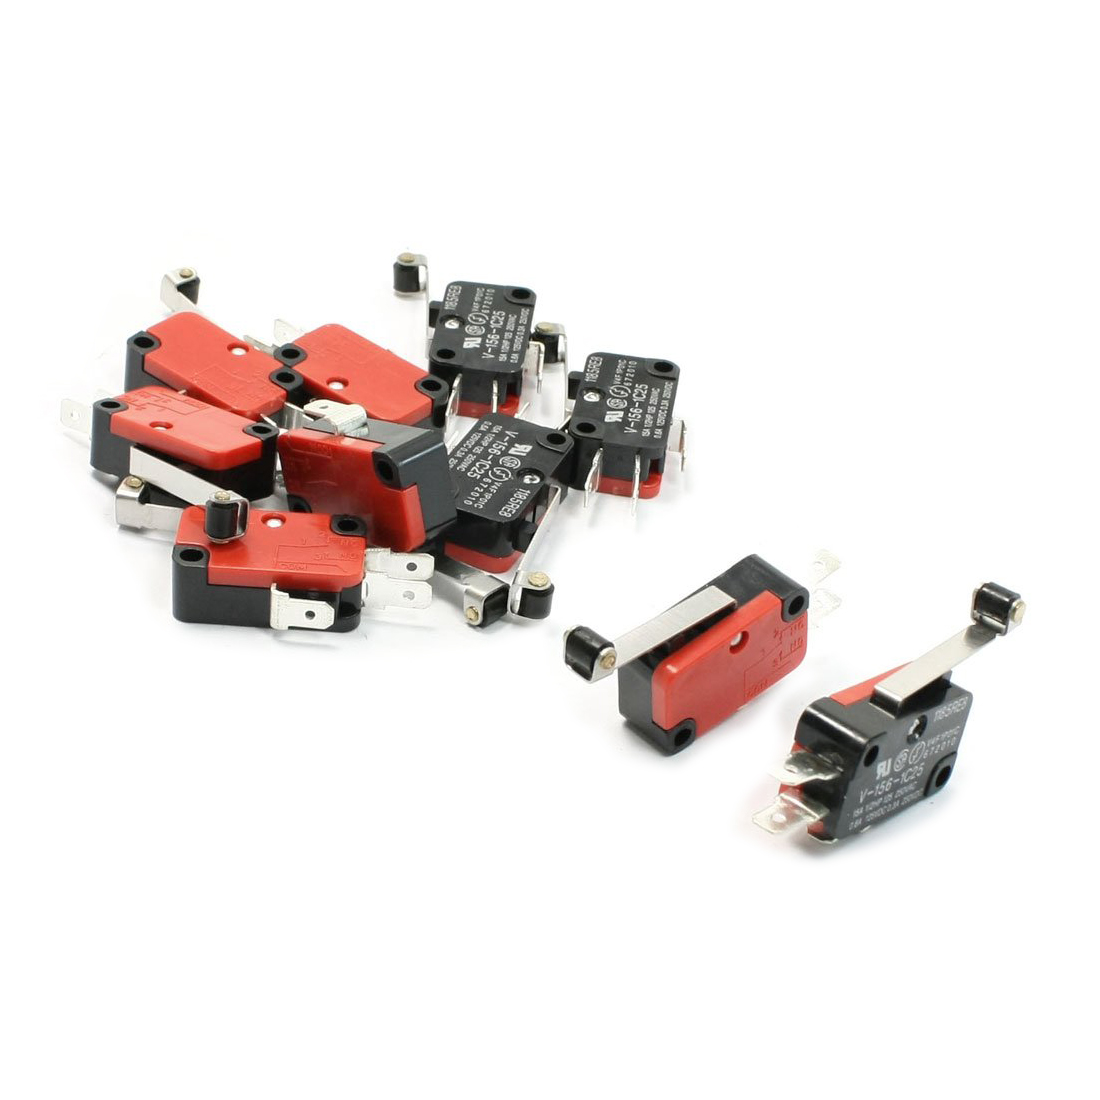 Promotion! 10 Pcs Micro Limit Switch Long Hinge Roller Lever Arm Snap Action LOT 10pcs lot v 153 1c25 limit switches long straight hinge lever type spdt micro switch mayitr for electronic measuring appliance